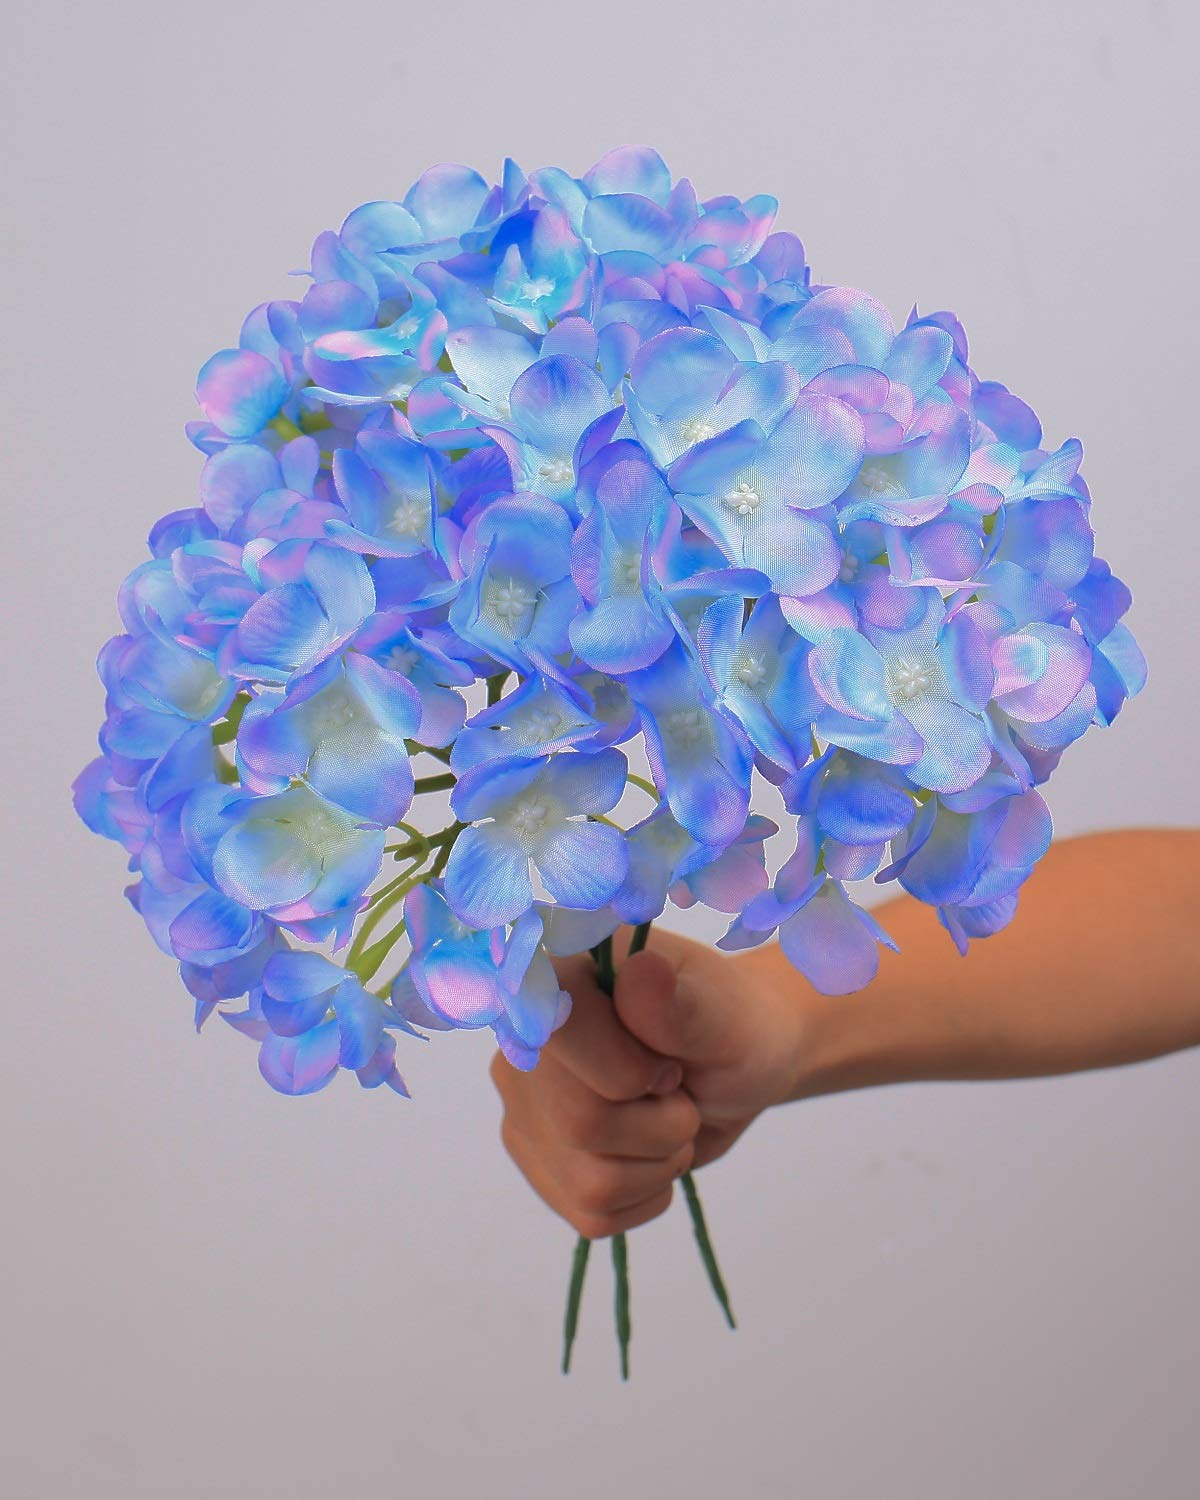 LUSHIDI-Silk-Hydrangea-Heads-with-Stems-Artificial-Flowers-Heads-for-Home-Wedding-DecorPack-of-10